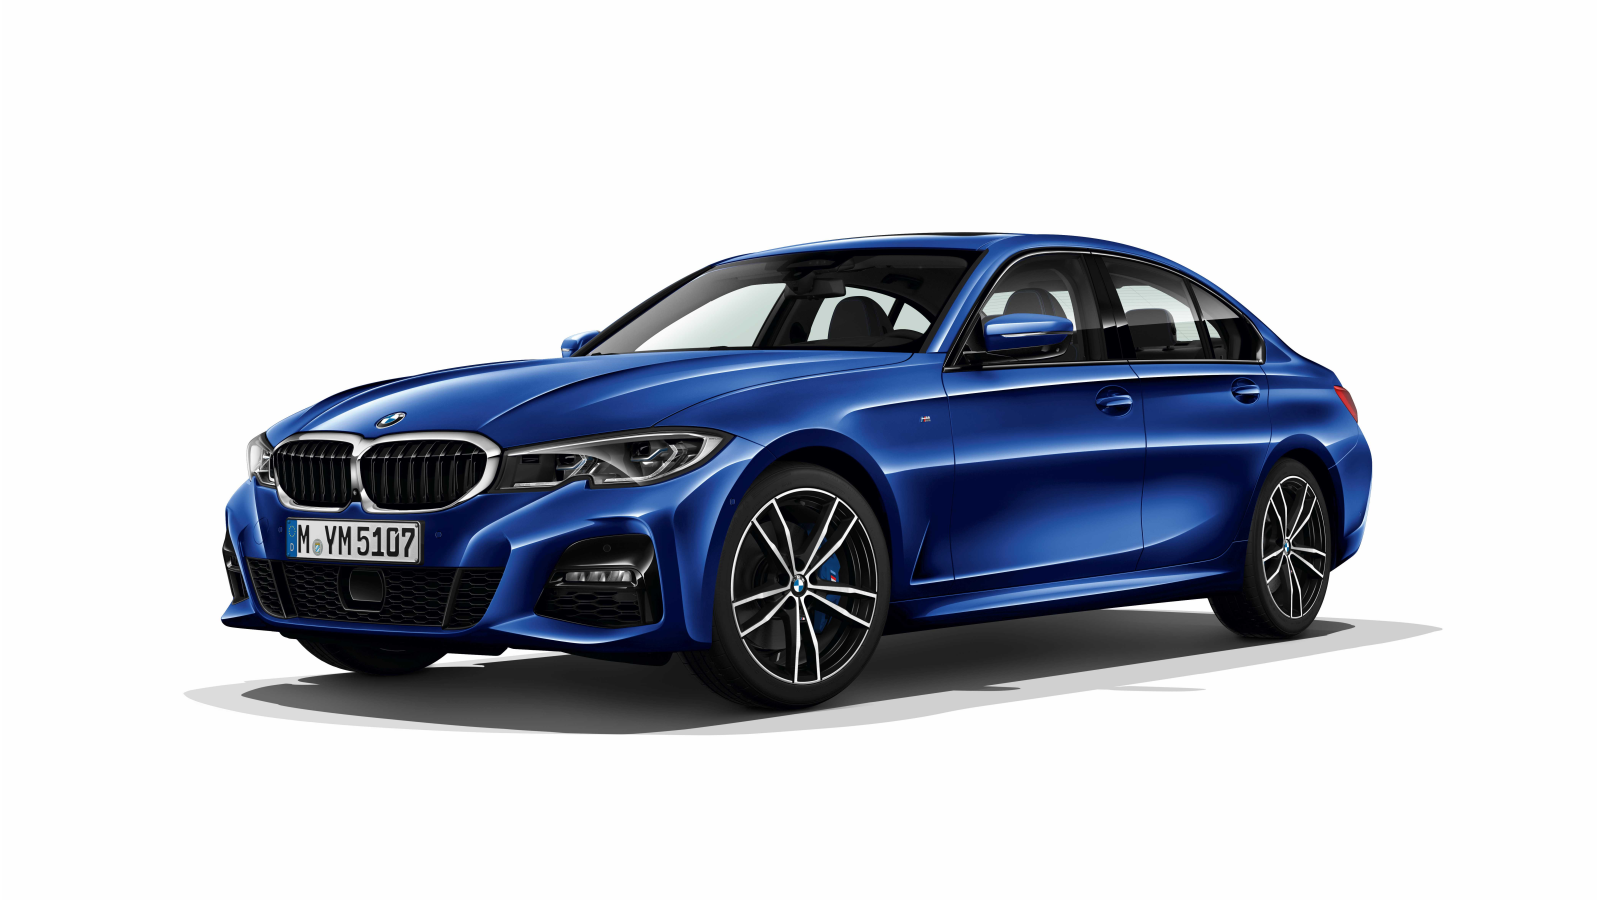 45 Great 2019 Bmw G20 3 Series Review with 2019 Bmw G20 3 Series